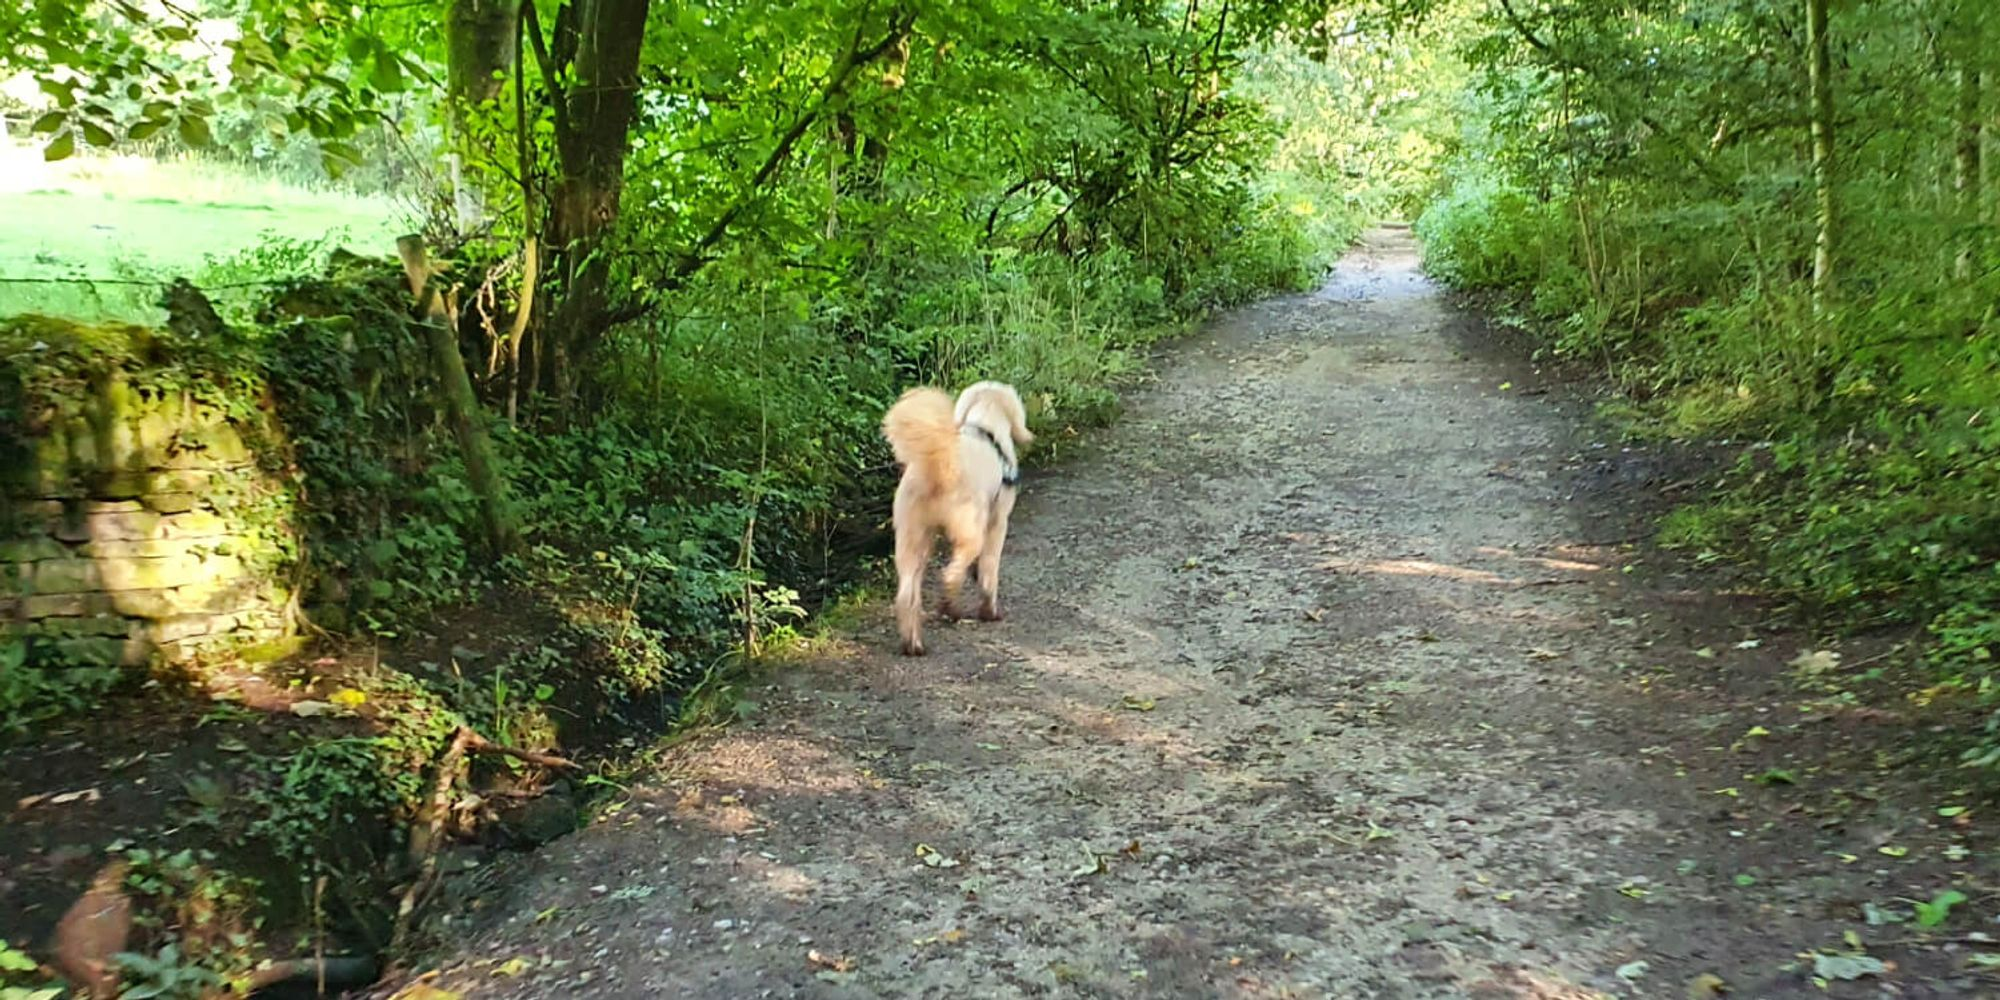 muddy path surrounded by trees with a dog to the left